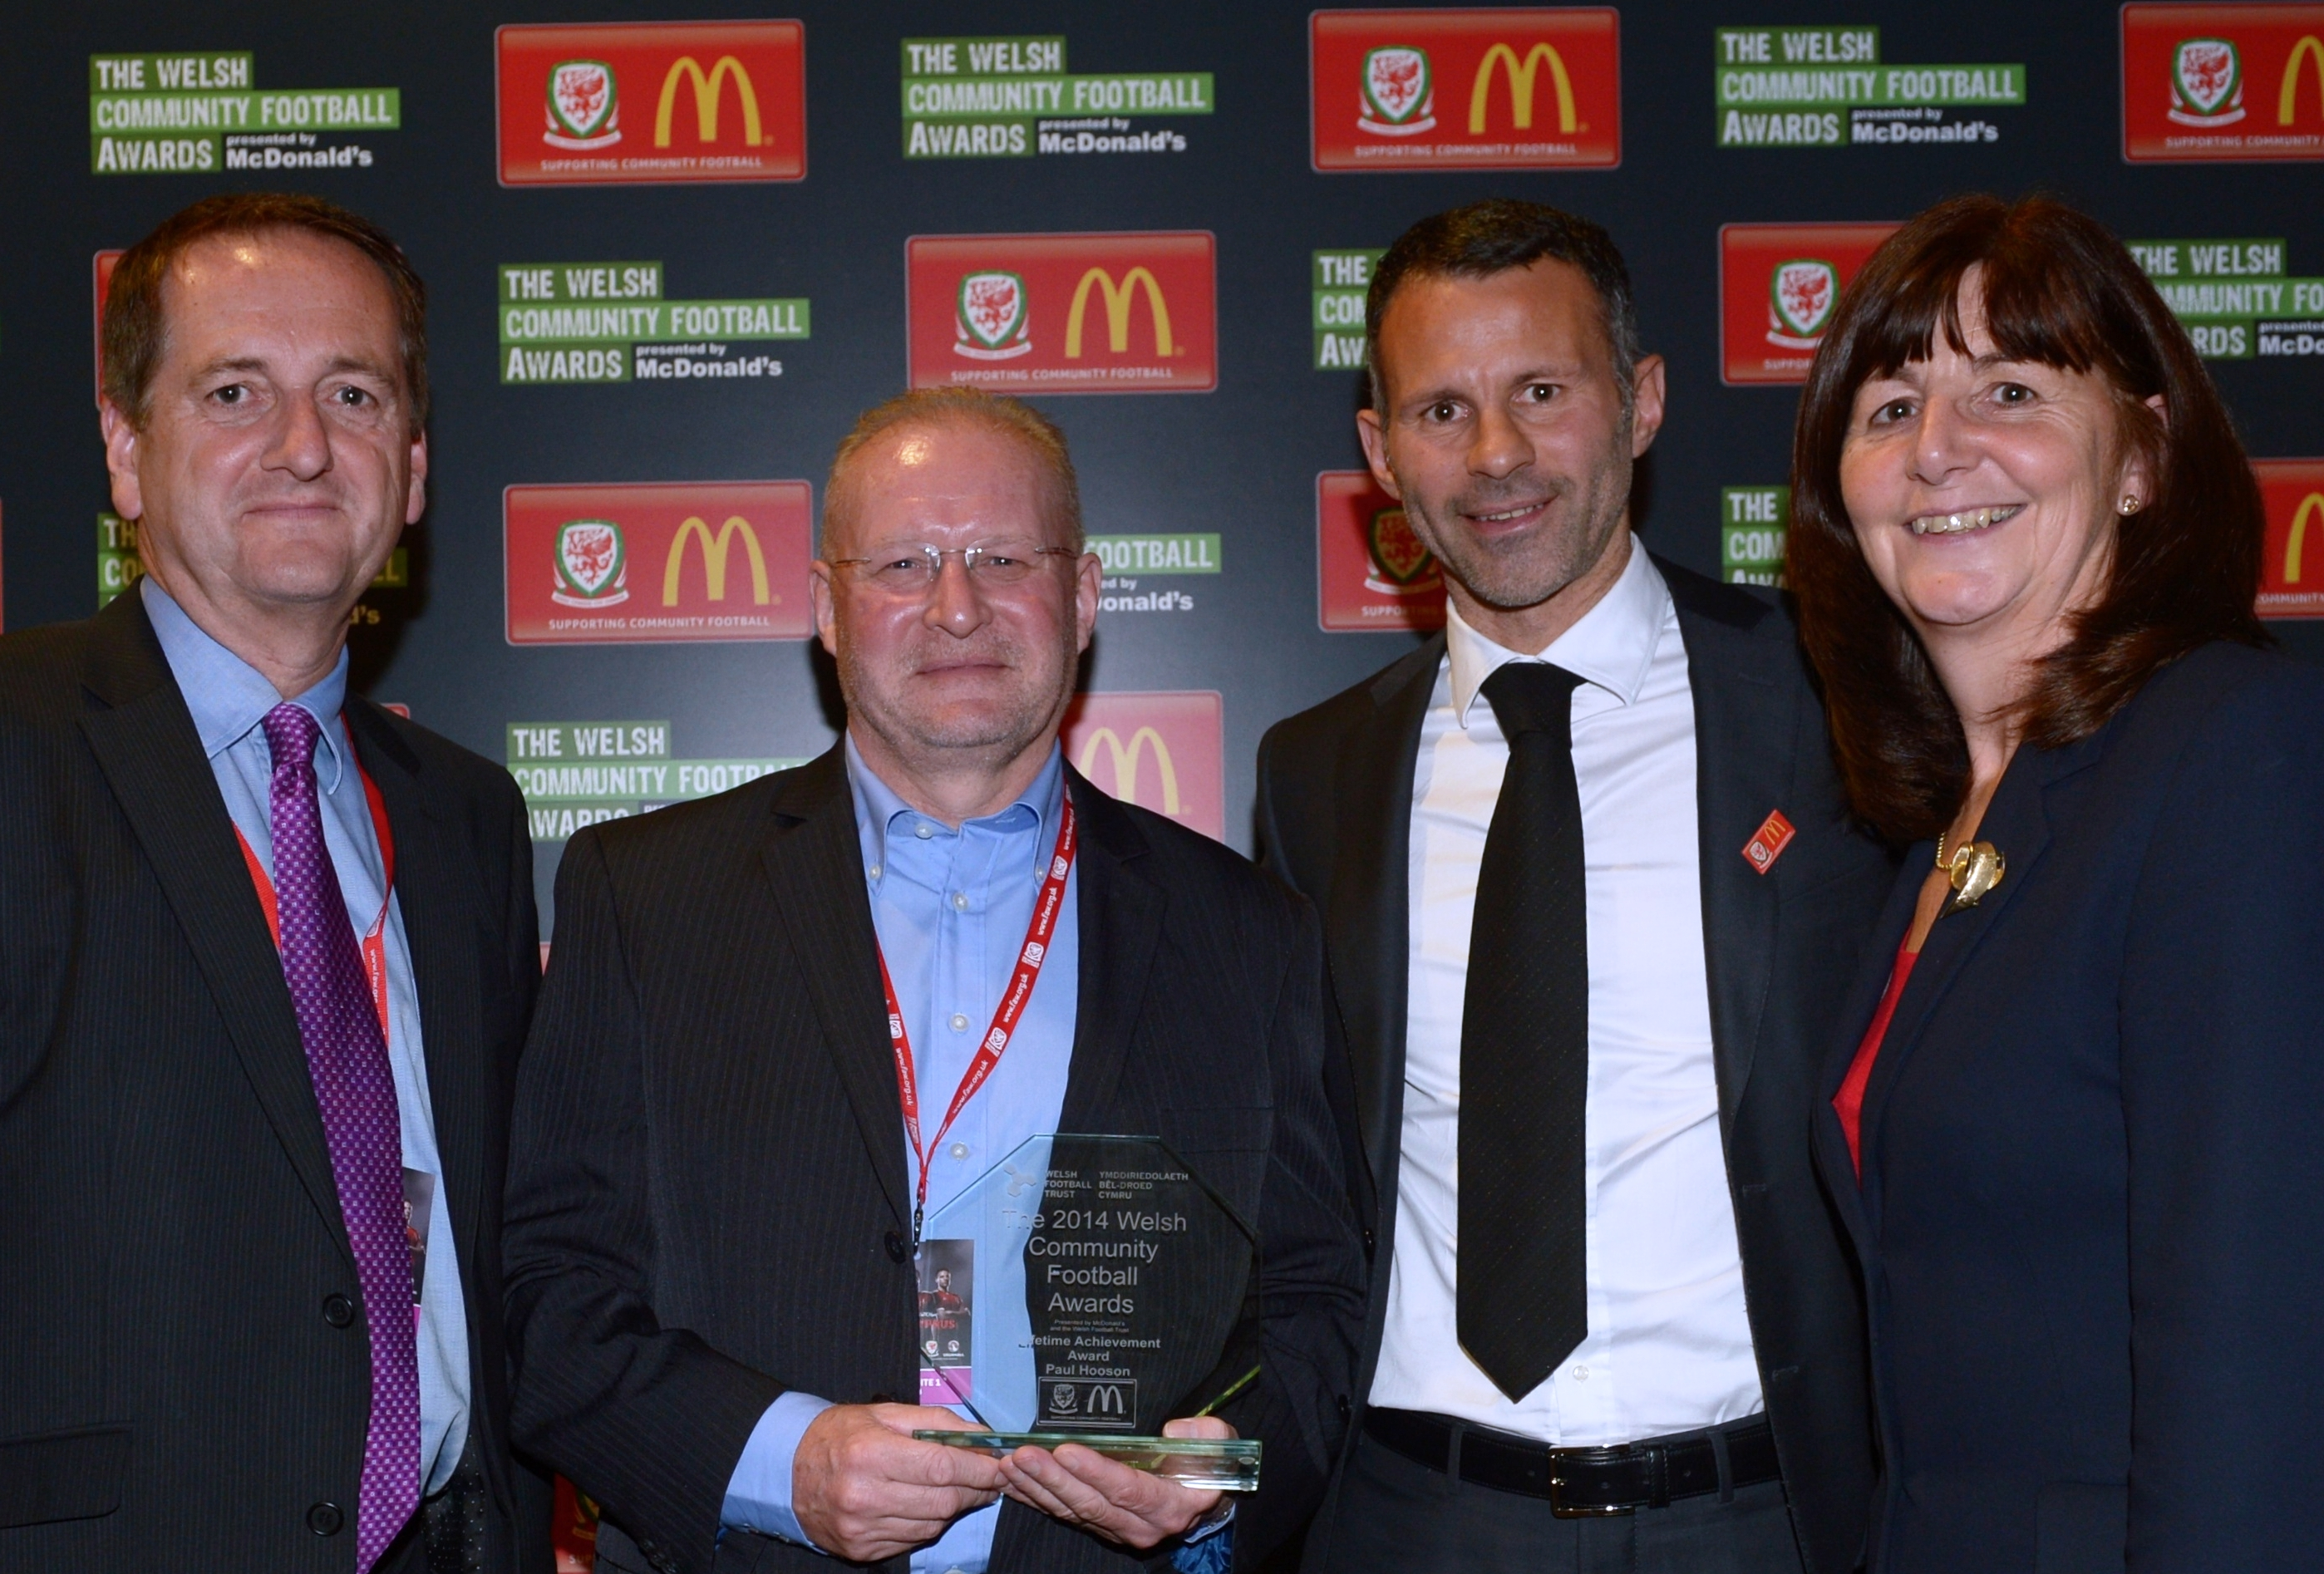 WREXHAM FOOTBALL HERO COLLECTS NATIONAL FOOTBALL AWARD